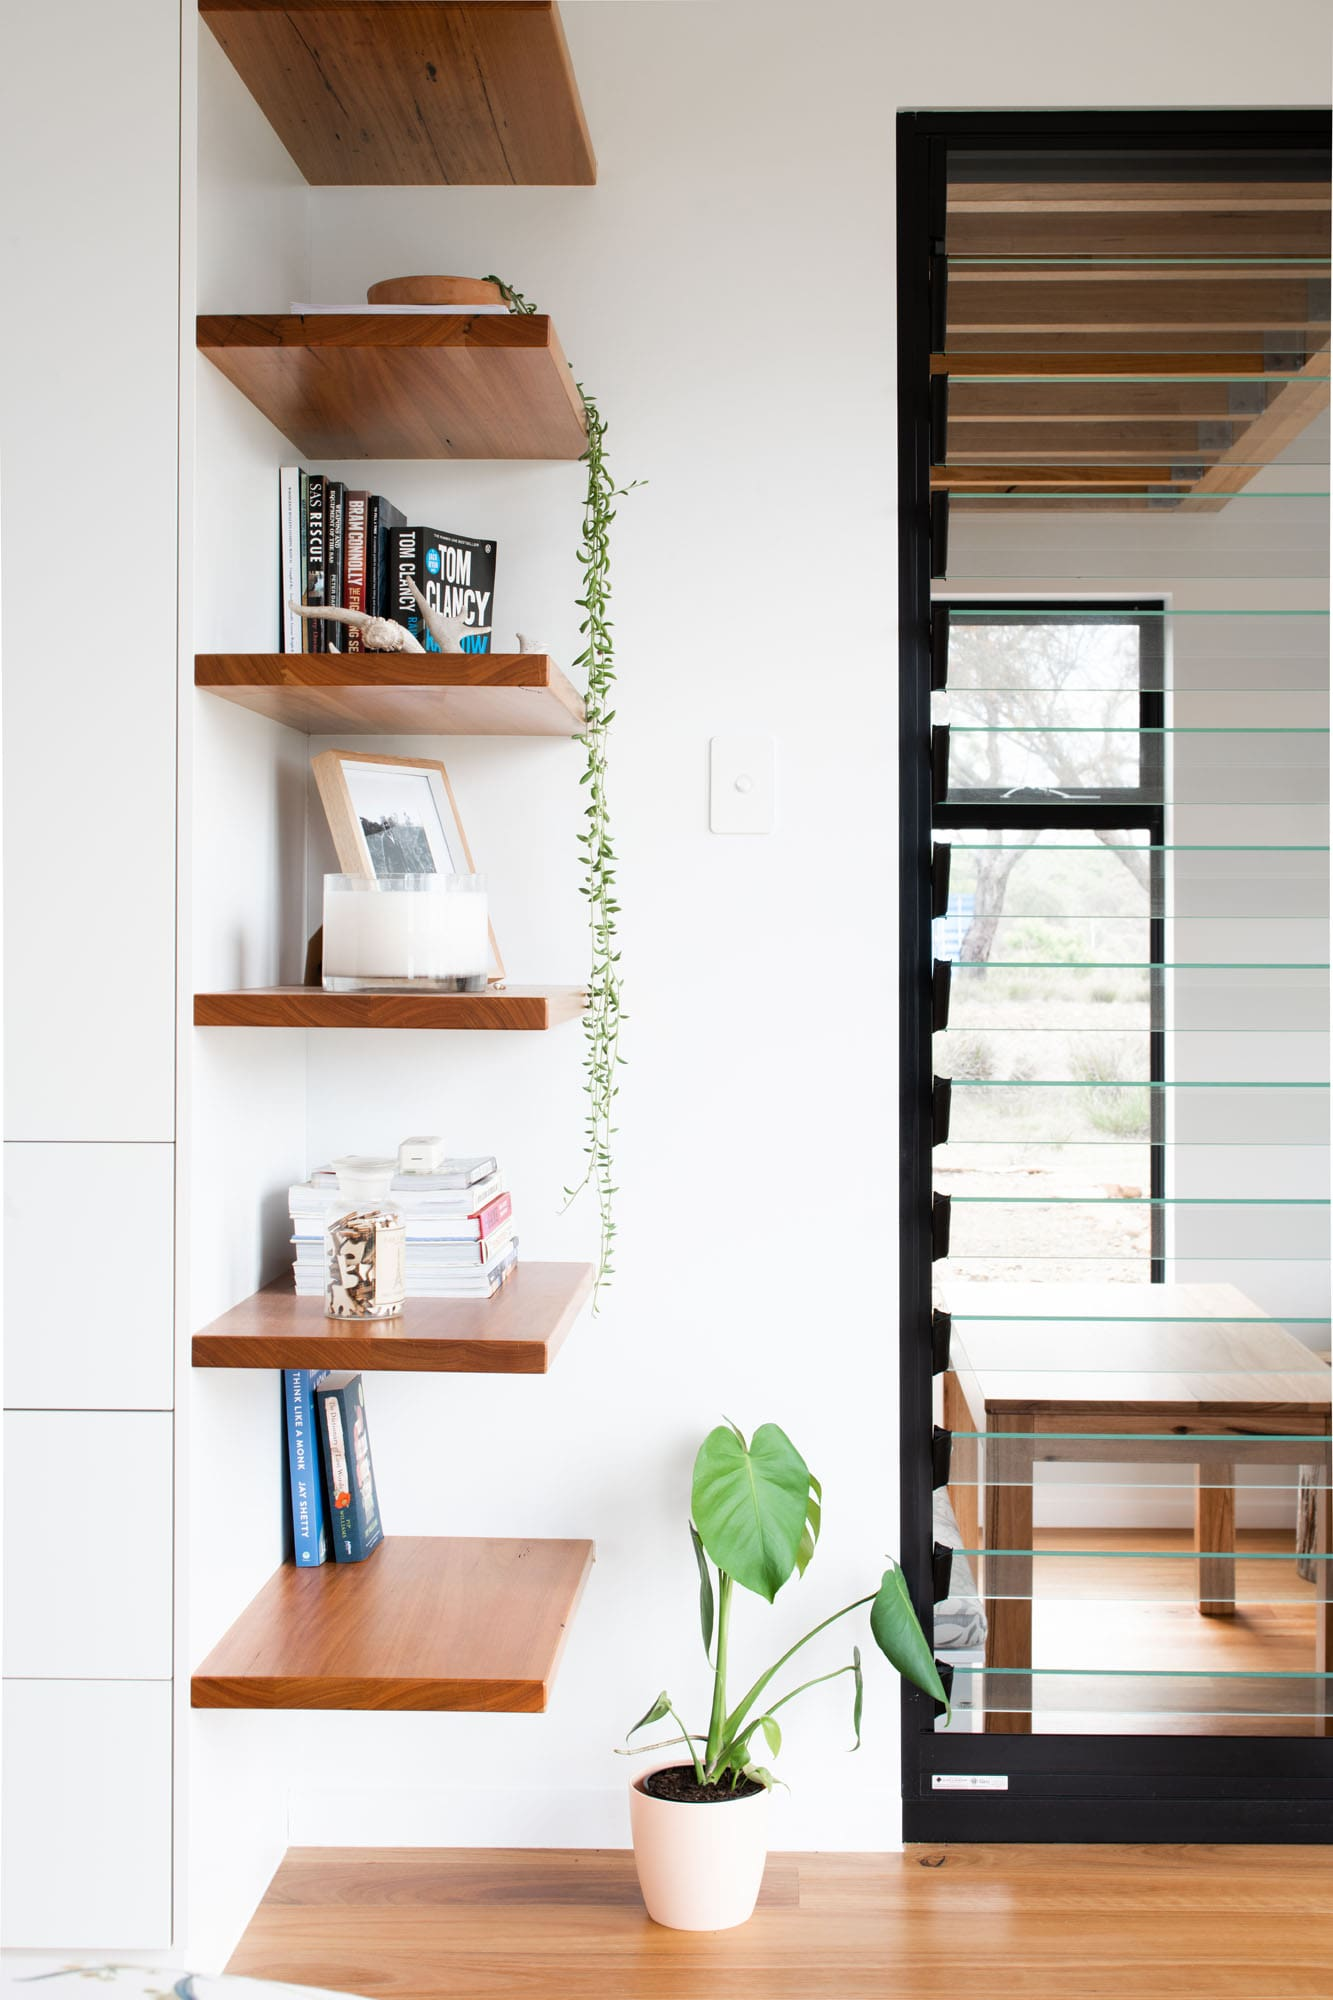 Timber shelves and louvered window in sustainable house